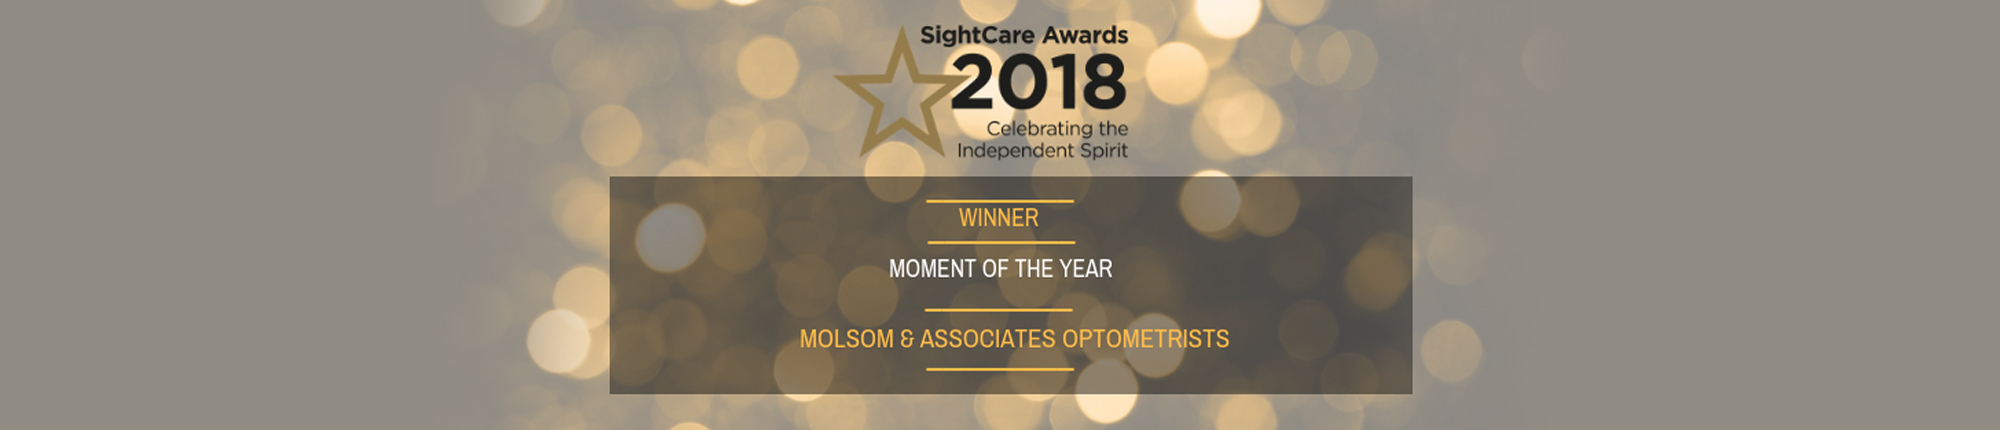 sightcare award winner